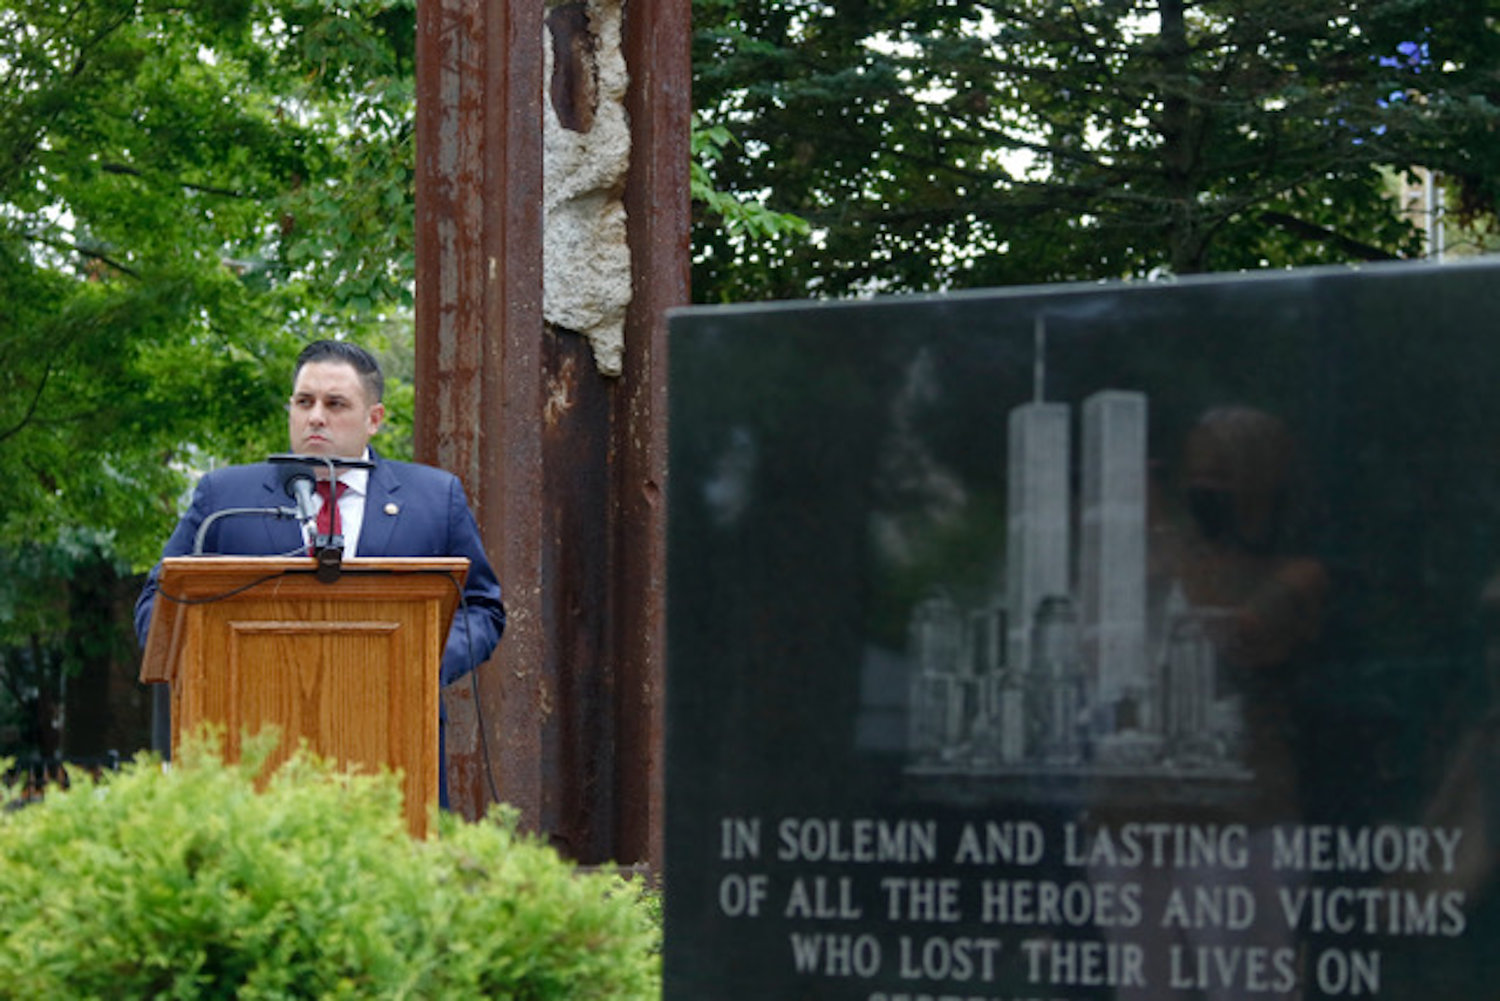 Hempstead Town Councilman Anthony D'Esposito read the names of those who died in the attacks.